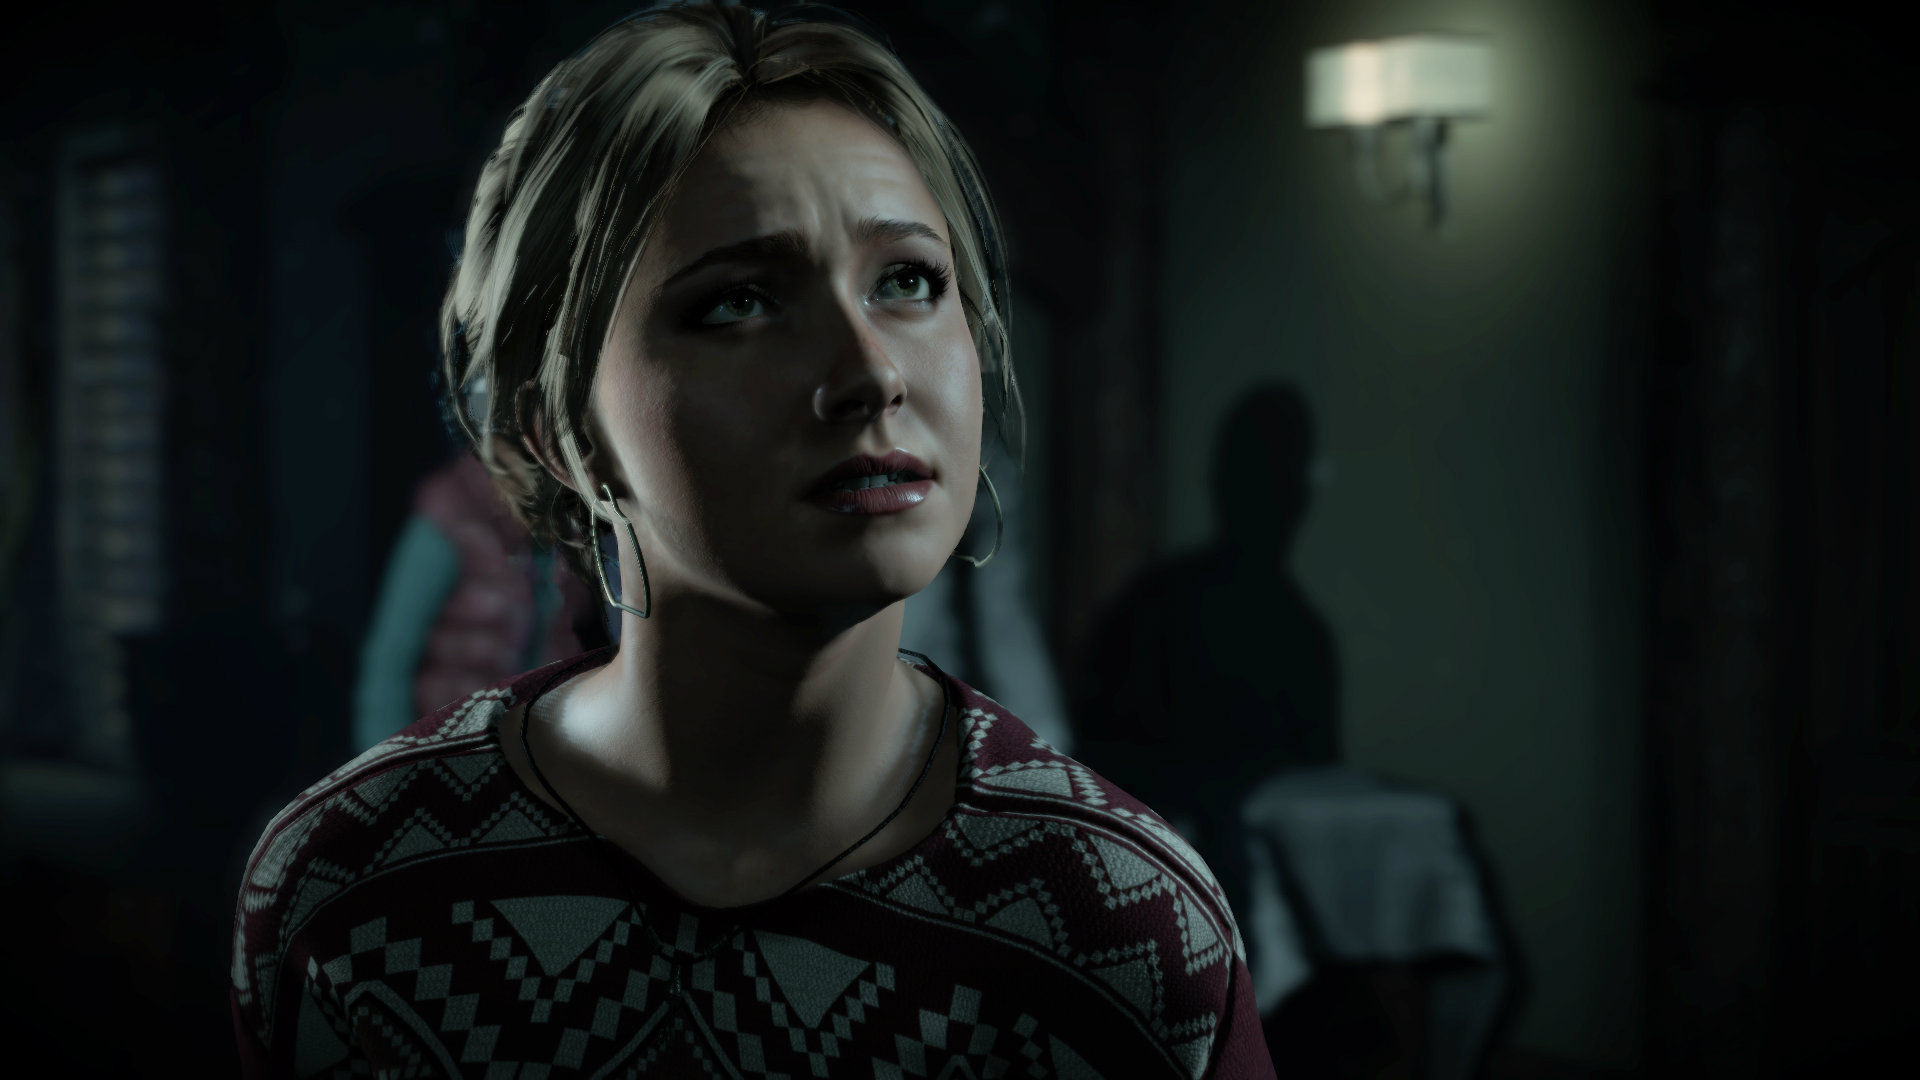 Horror Hits Home In These Stunning New Screenshots For PS4 Exclusive Until Dawn